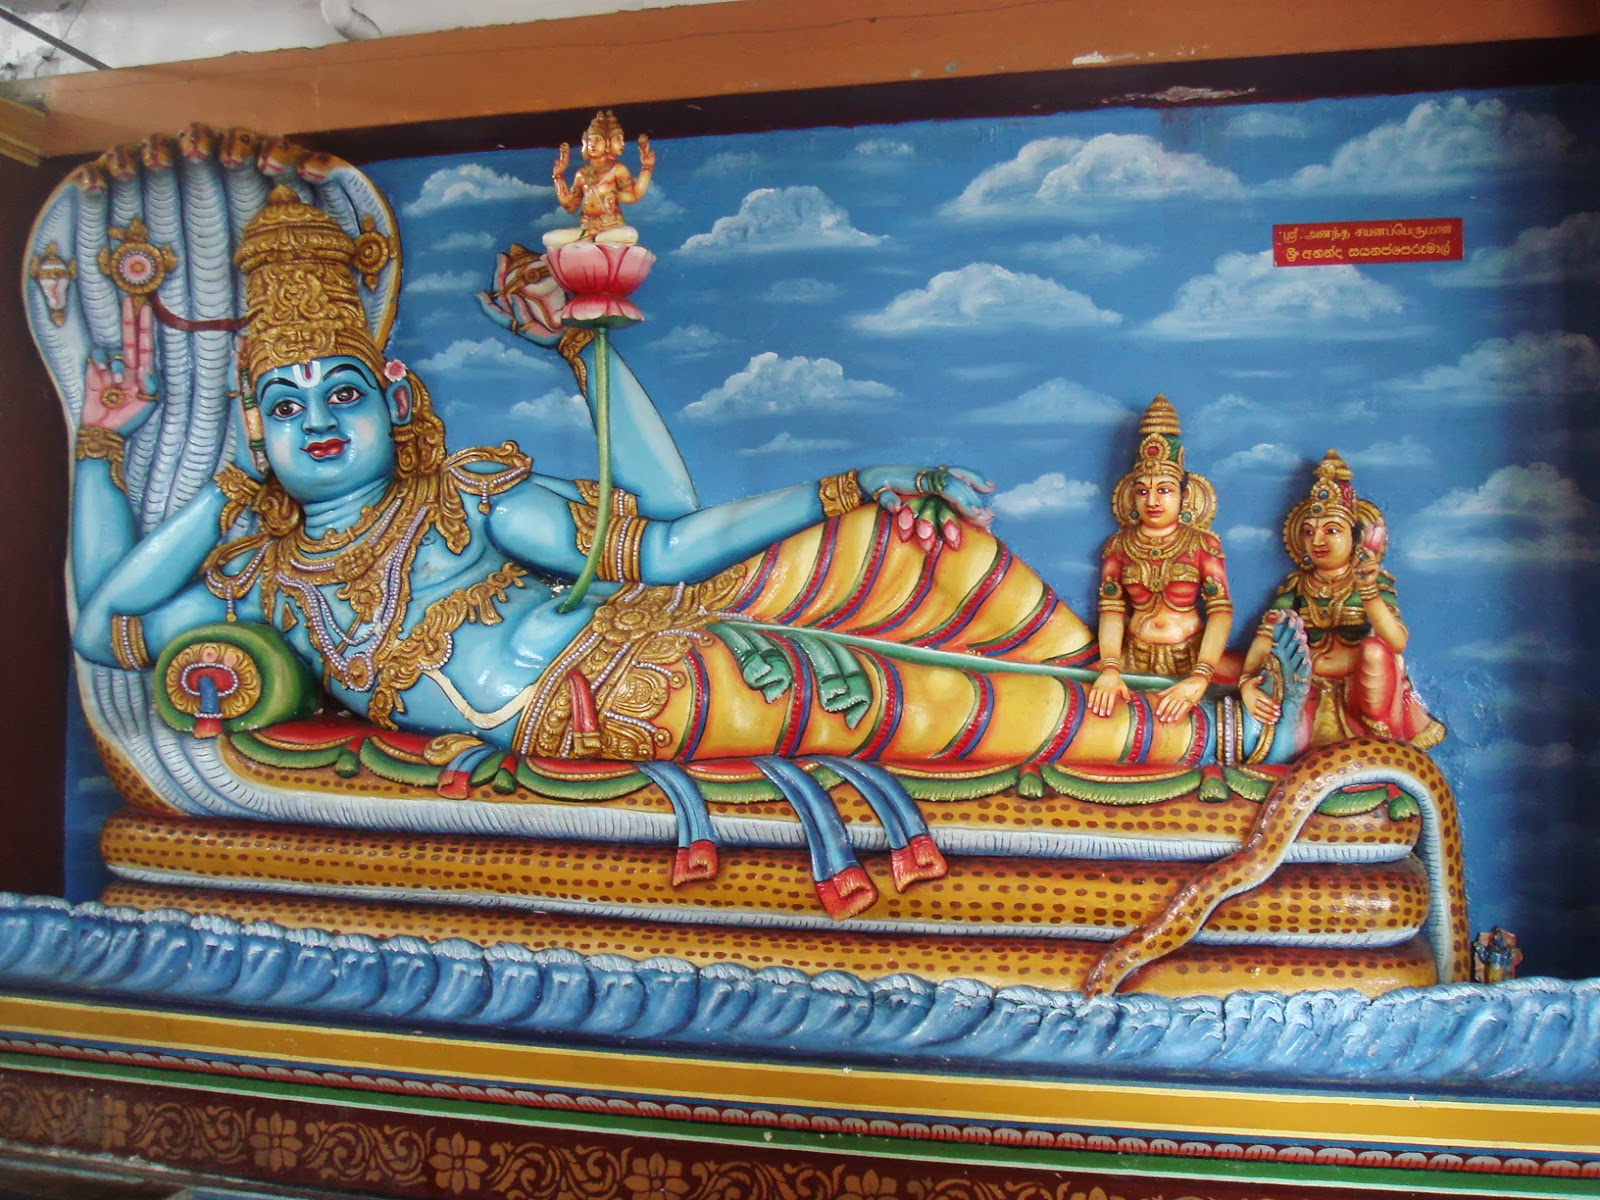 Myths Symbols And Mysteries The Symbolism Of Vishnu In World Religions